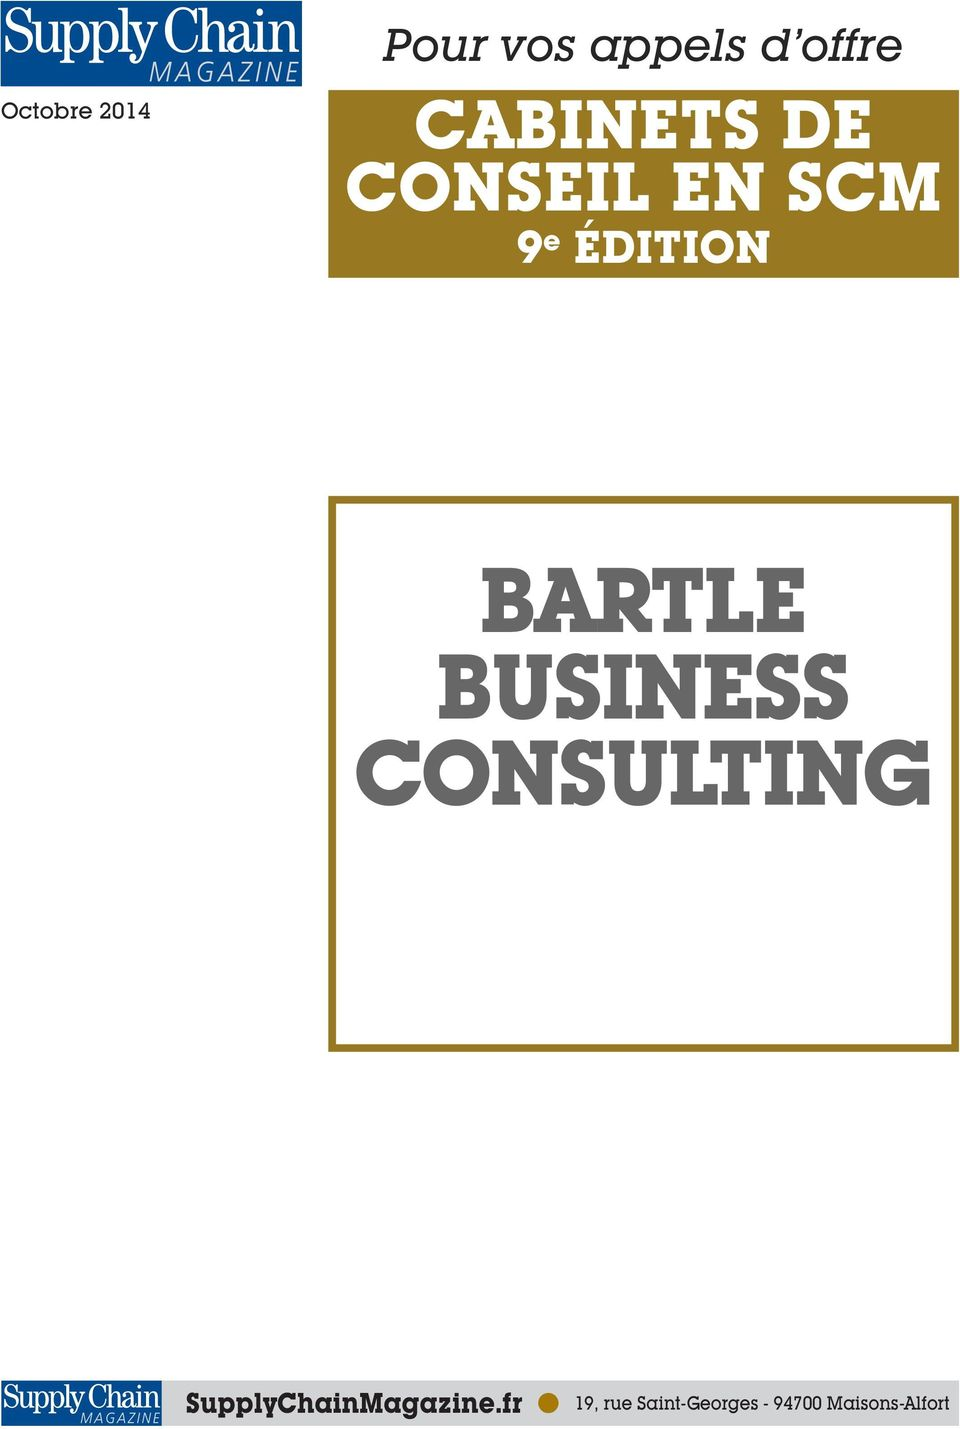 BARTLE BUSINESS CONSULTING